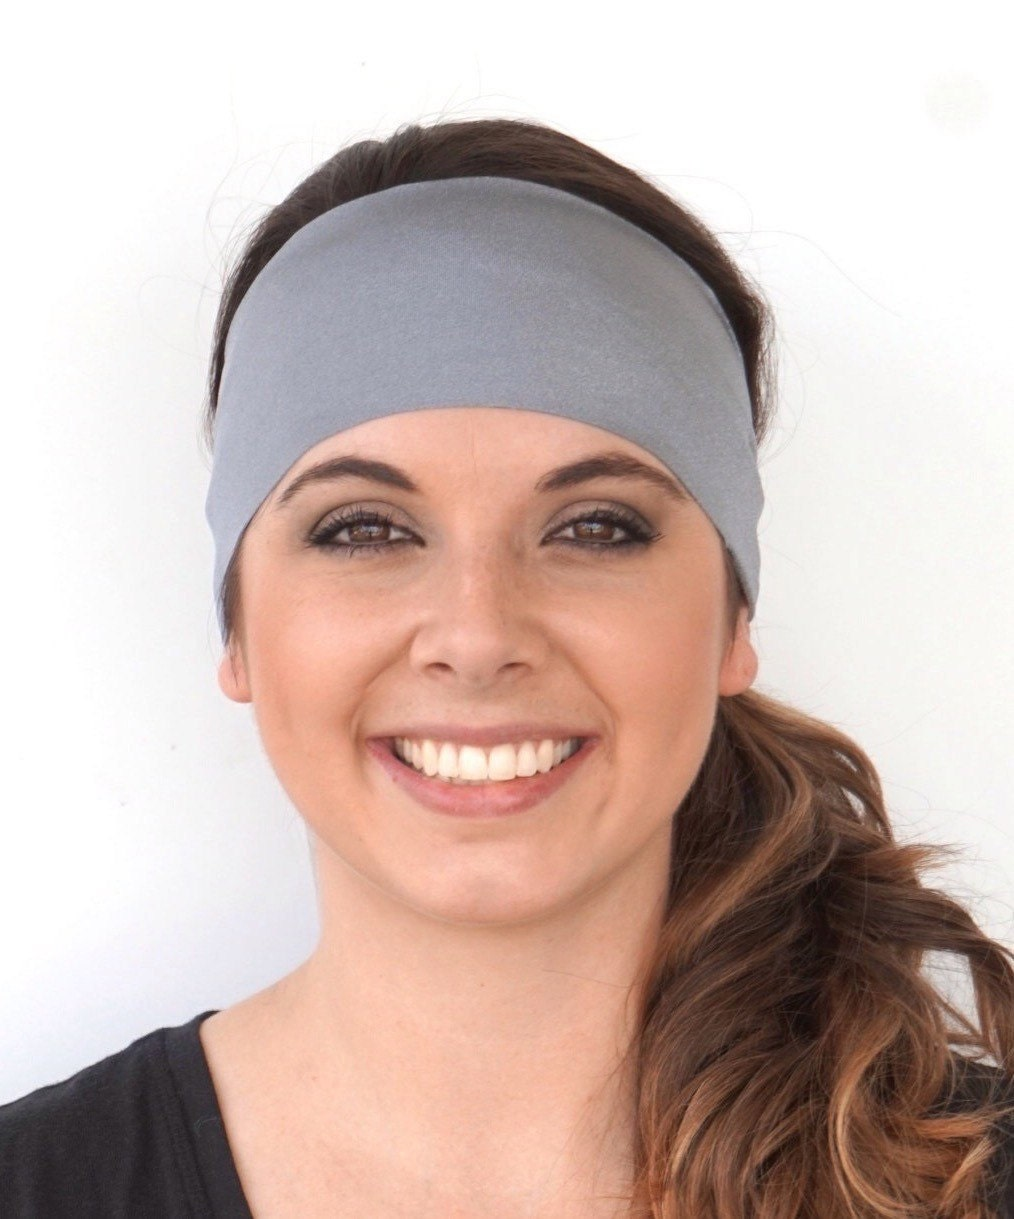 hair styles with headbands shiny gray solid fitness headband headband fashion 6421